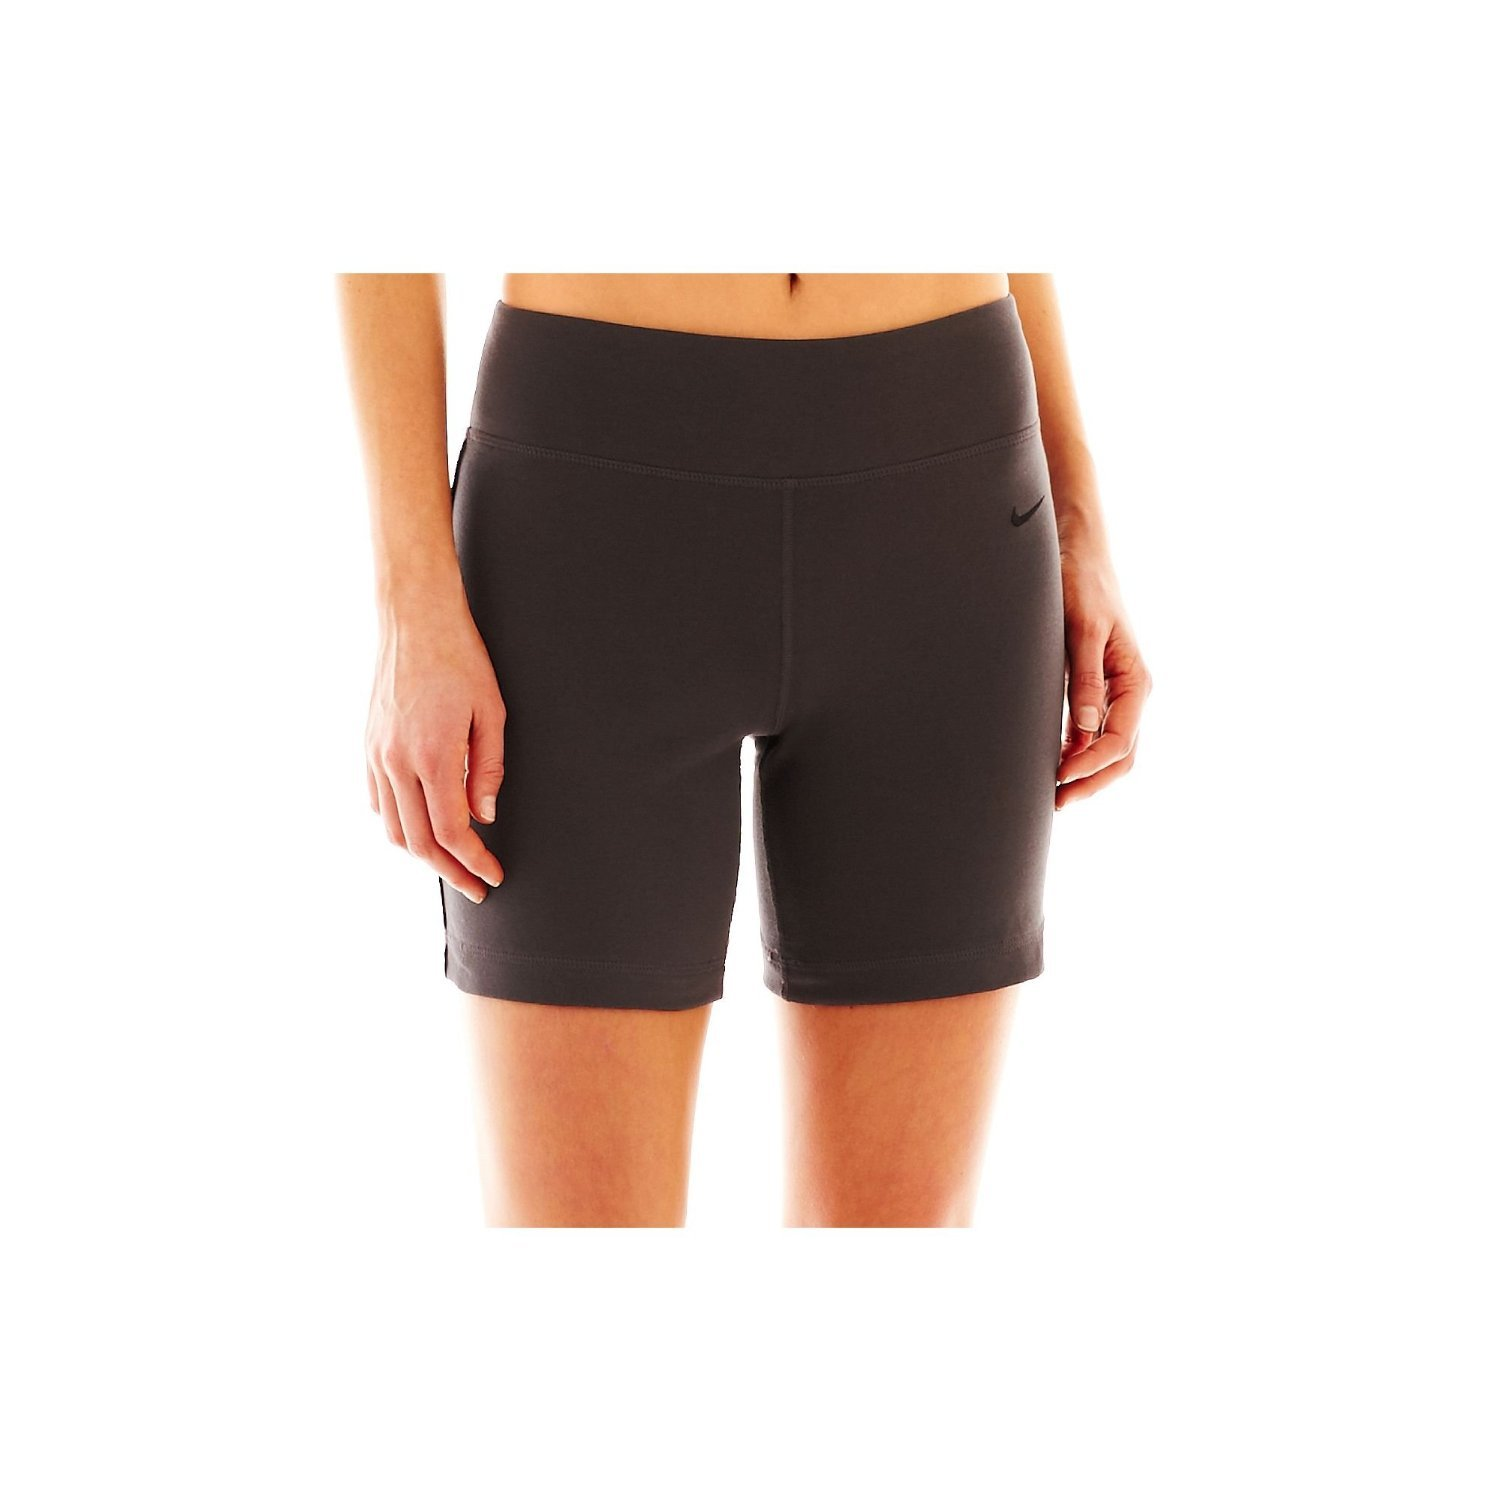 new nike womens sport casual cotton shorts 555439014